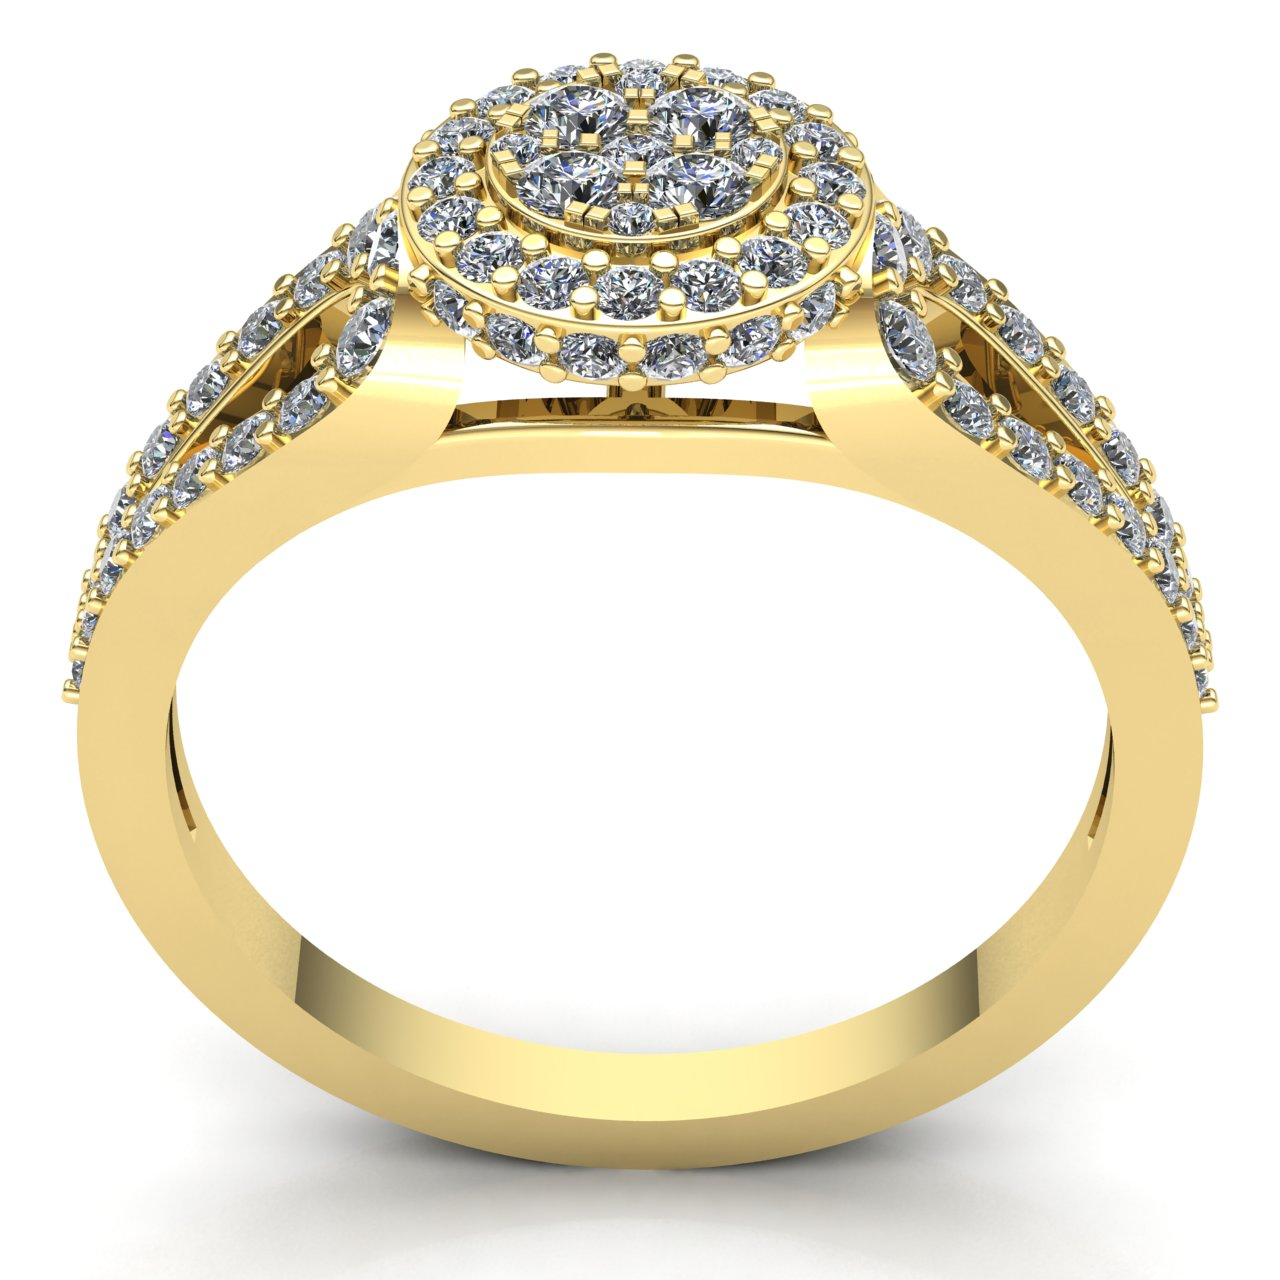 3ct-Round-Cut-Diamond-Ladies-Bridal-Cluster-Halo-Engagement-Ring-14K-Gold